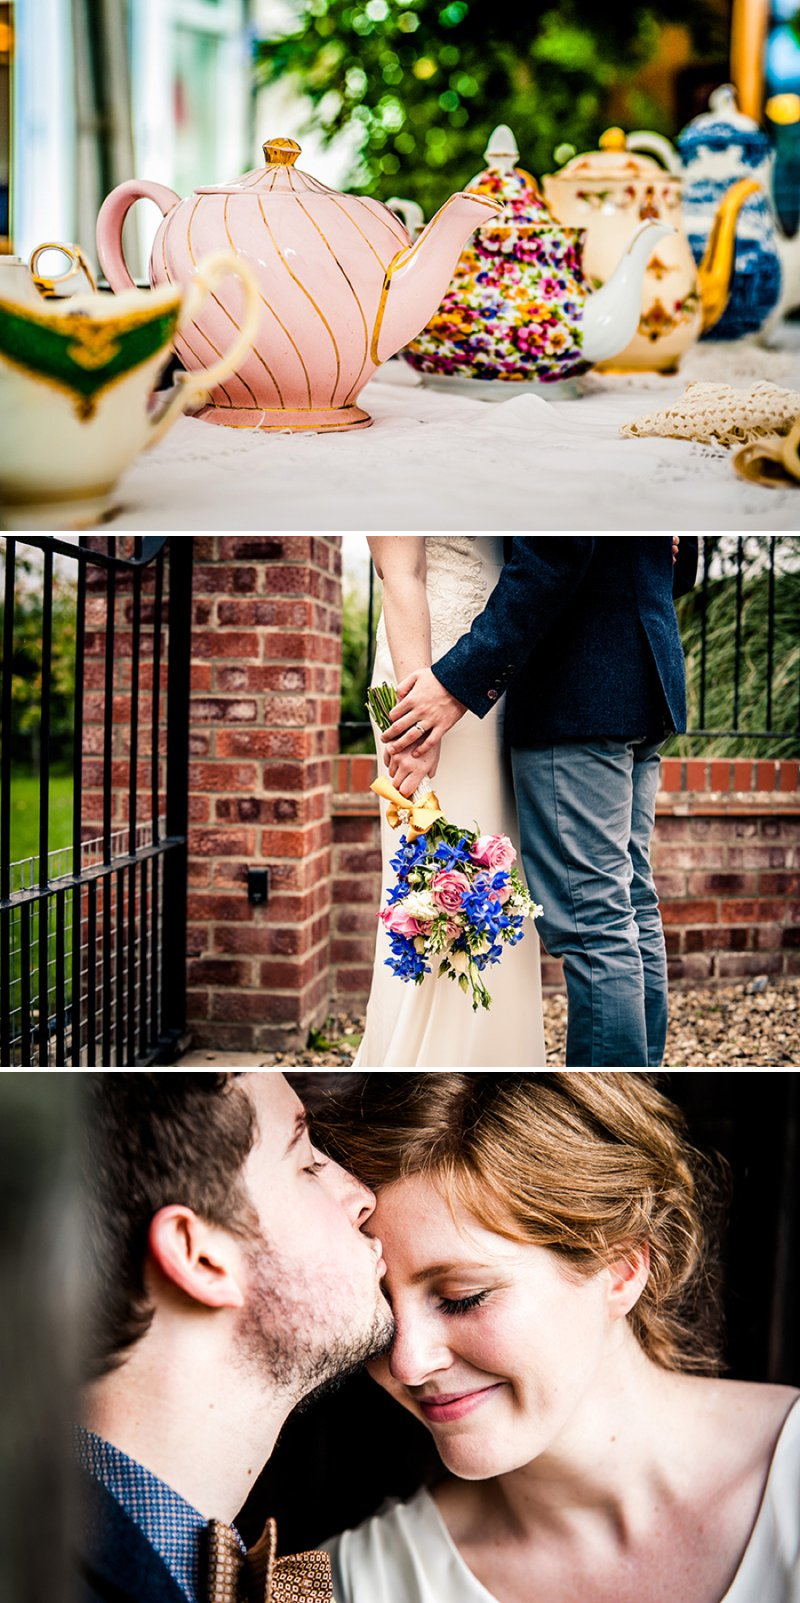 Rustic Backyard Wedding With Bride In Elegant Rapsimo Dress And Groom In Wool Suit And Bowtie With Lots Of Home Made Details And A High Tea Wedding Breakfast 1 Tea And Cake.